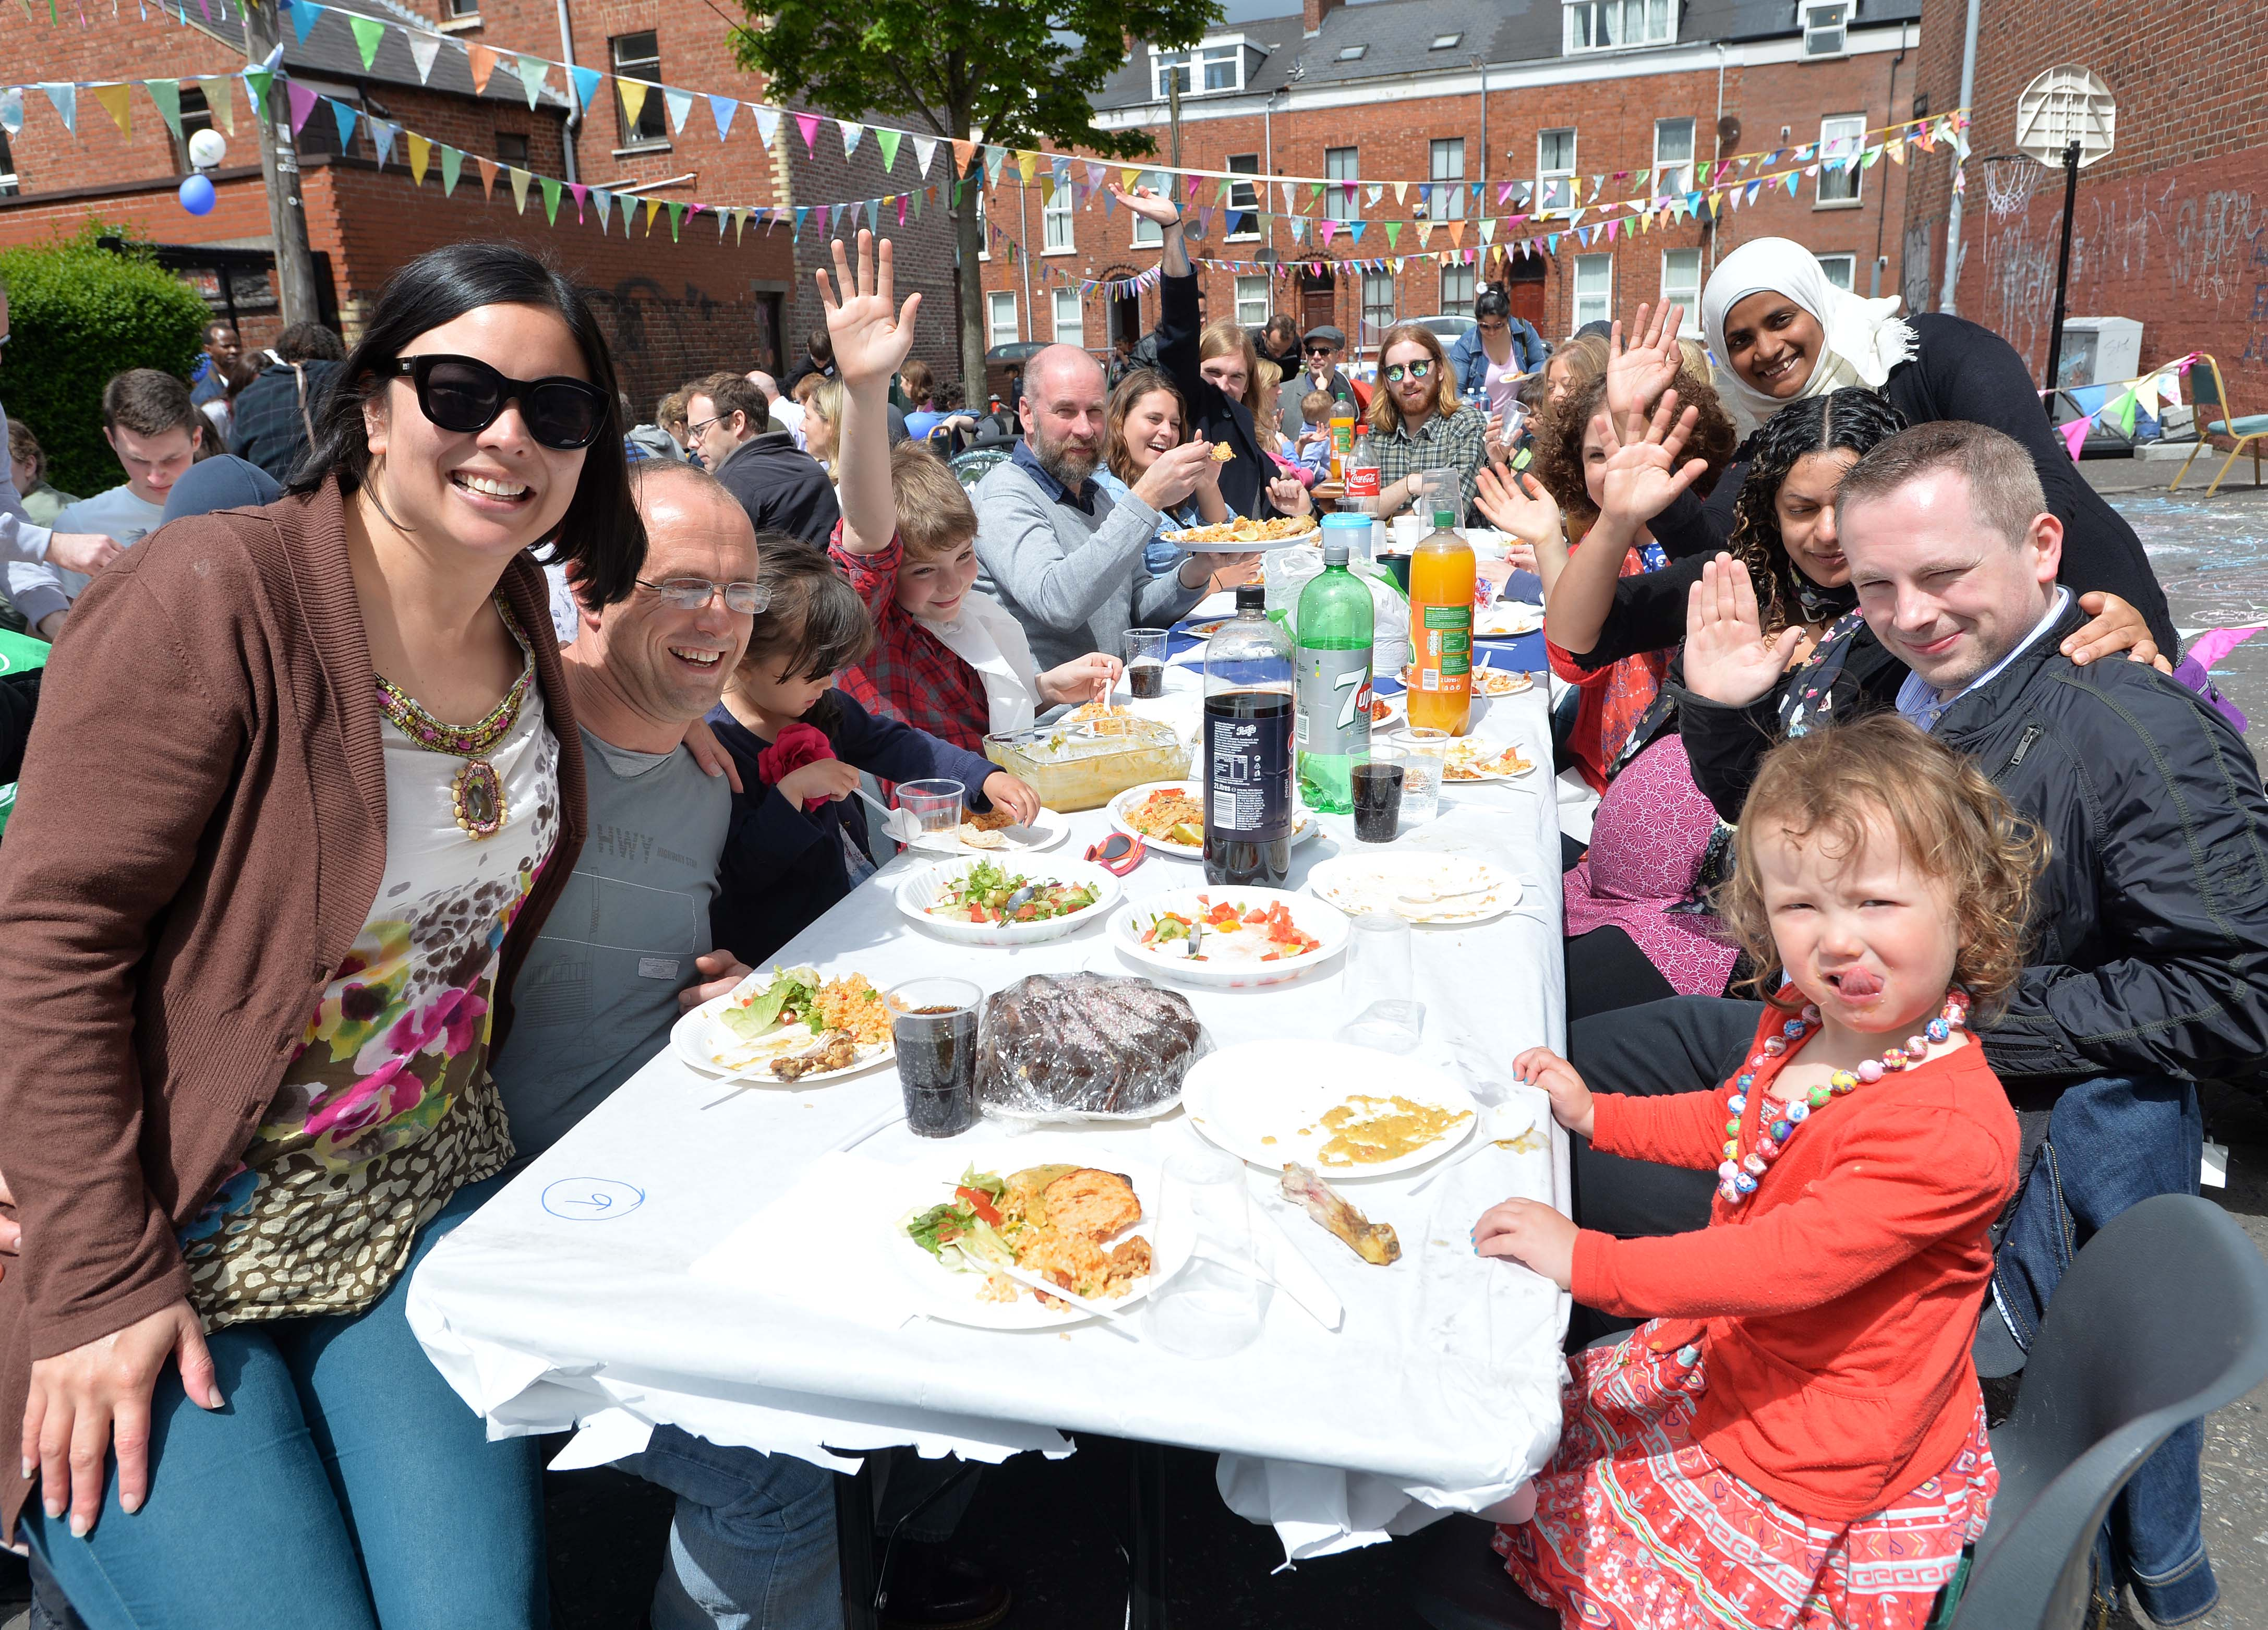 The Big Lunch in a street